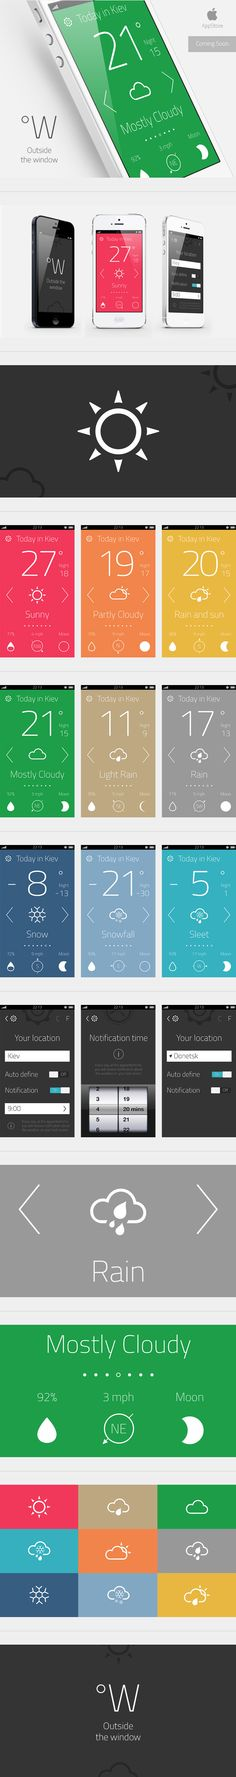 "Weather App ""Outside the window"" 